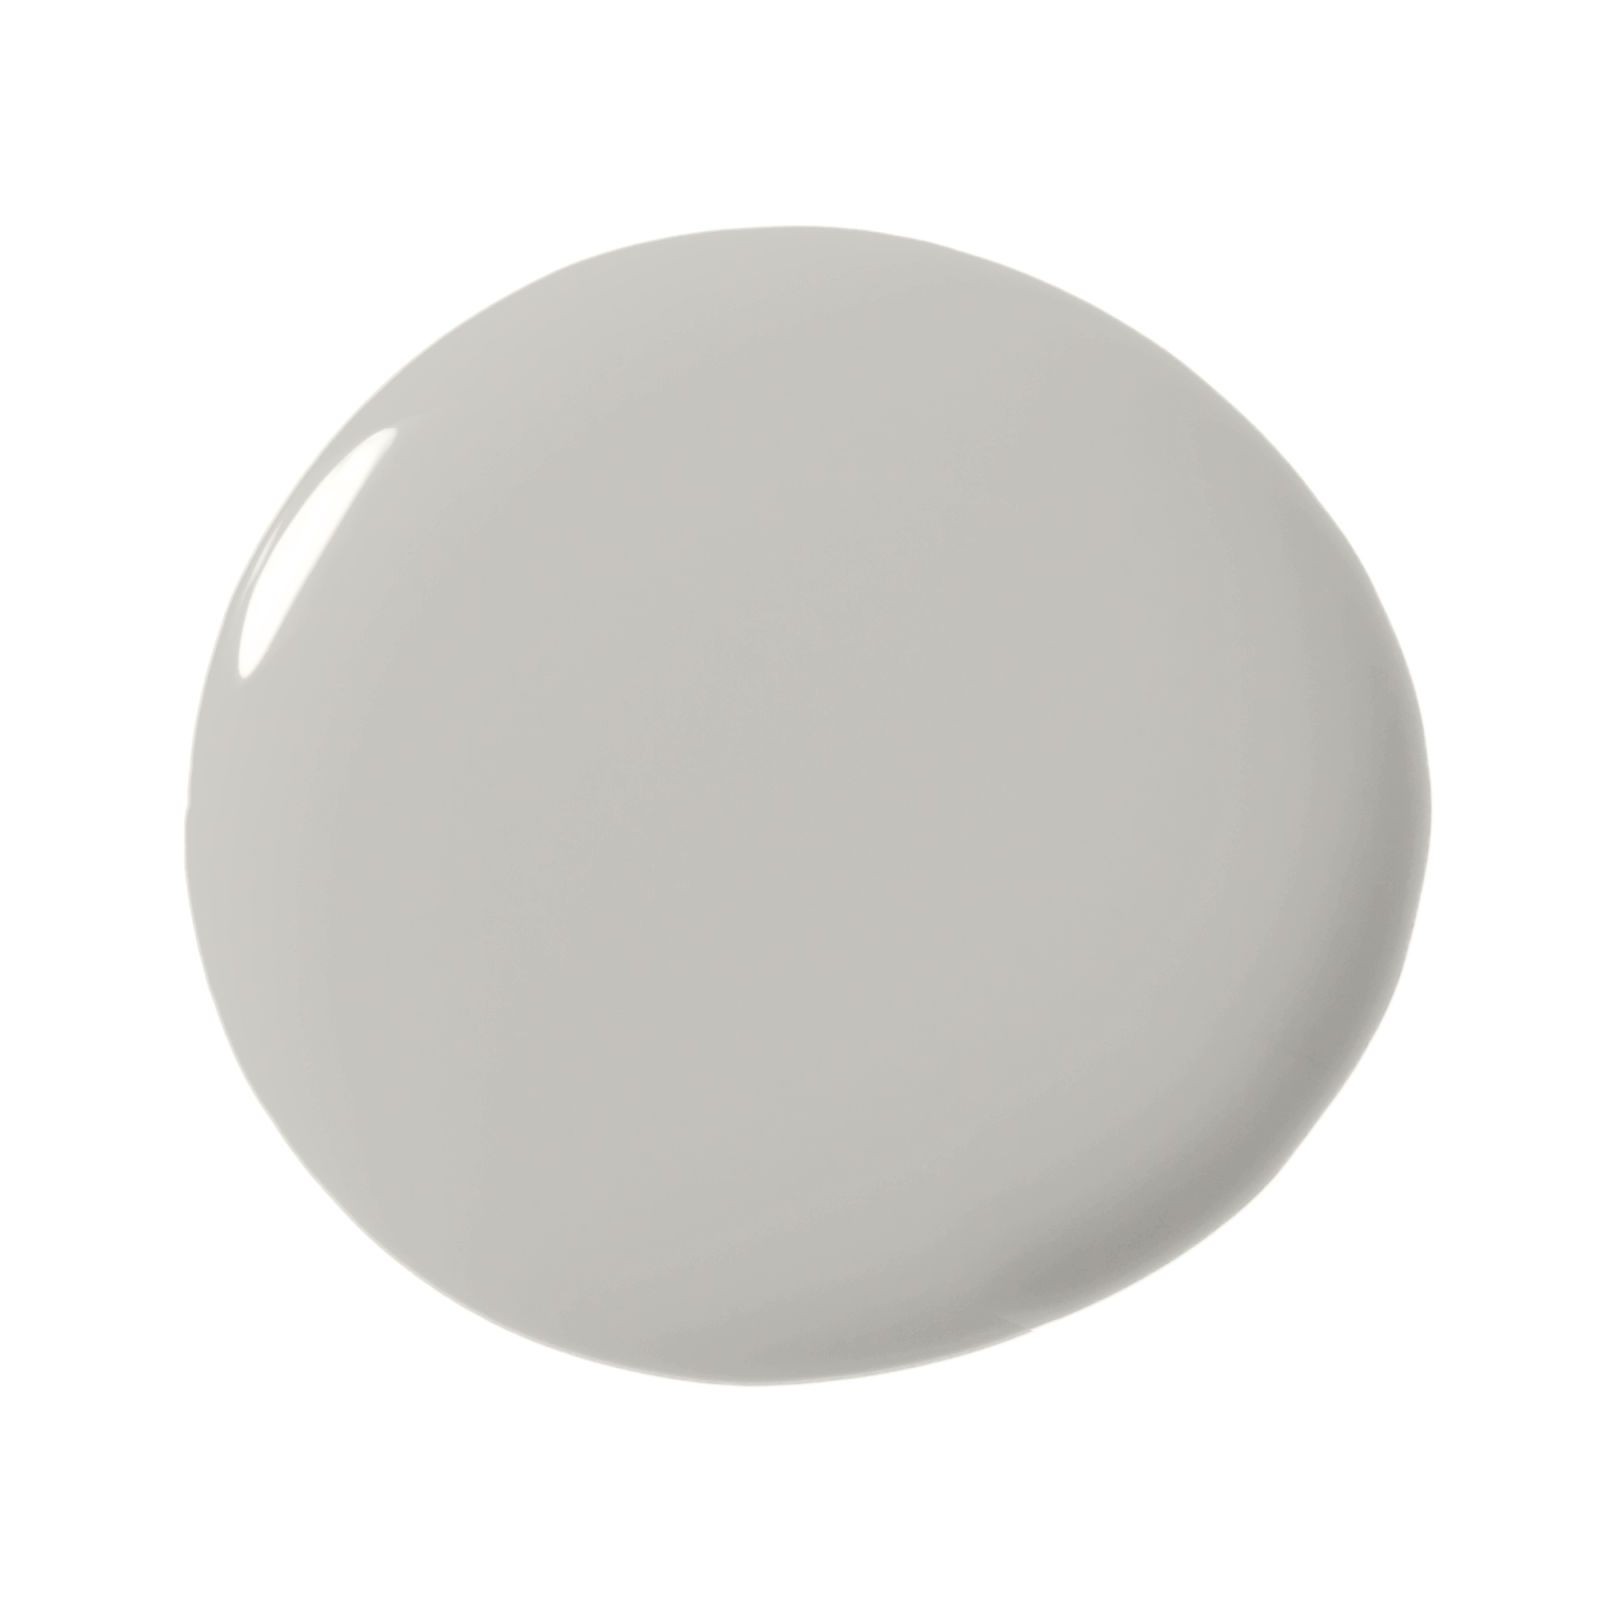 Designers Say These Are The Best Kitchen Paint Colors   Pinterest